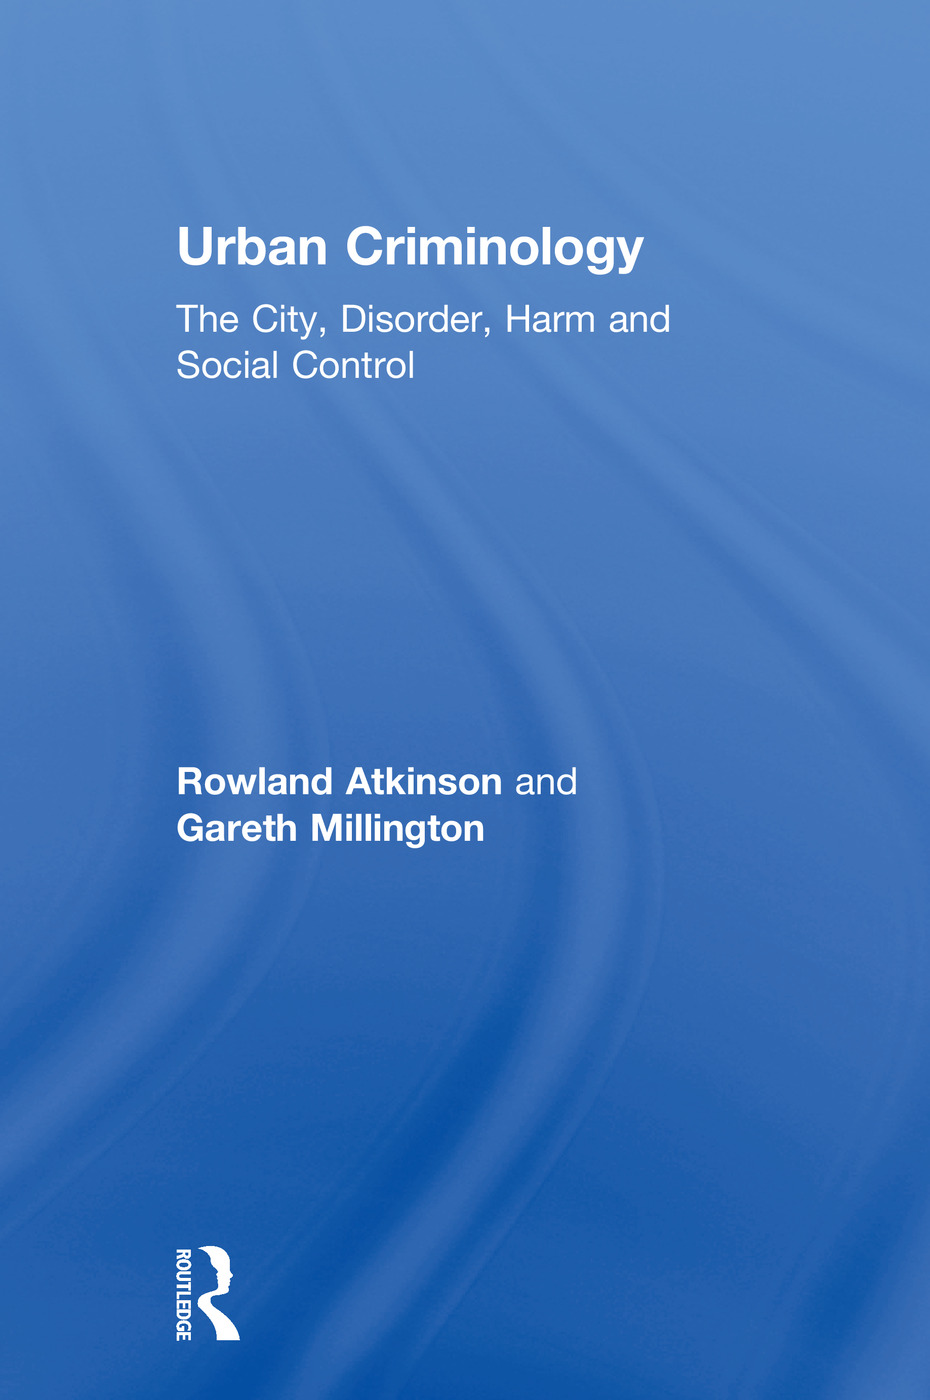 Urban Criminology: The City, Disorder, Harm and Social Control book cover